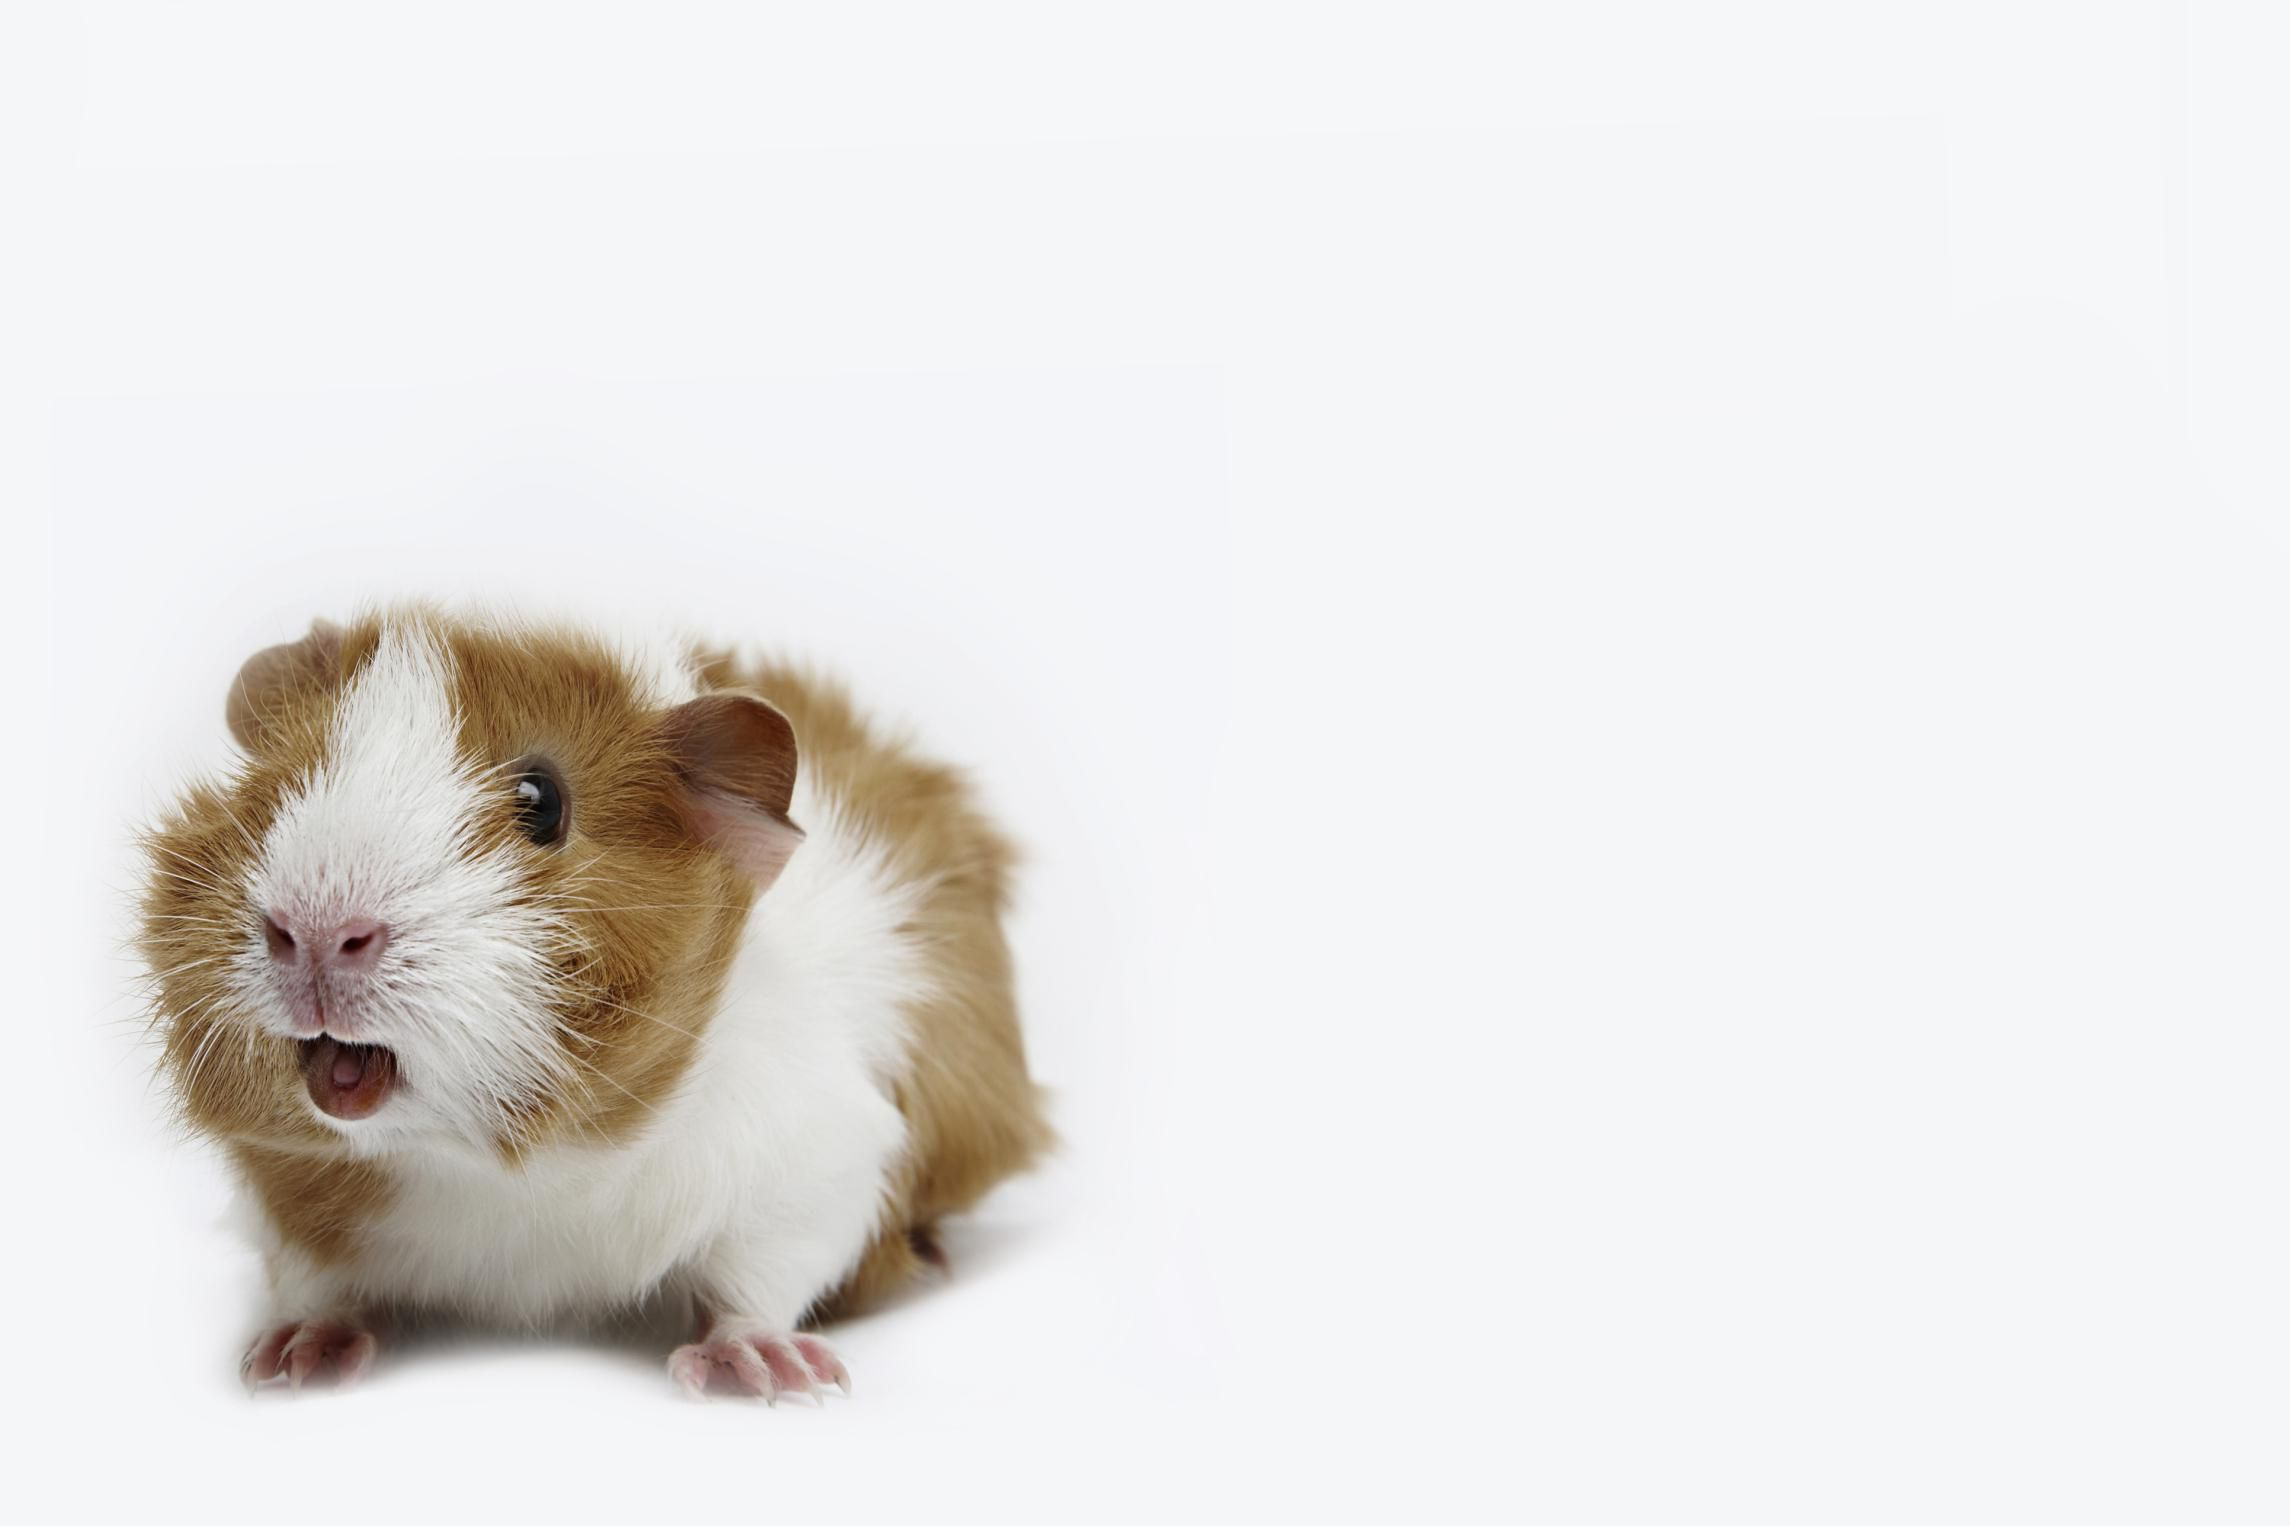 How to Decipher Guinea Pig Sounds and Body Language